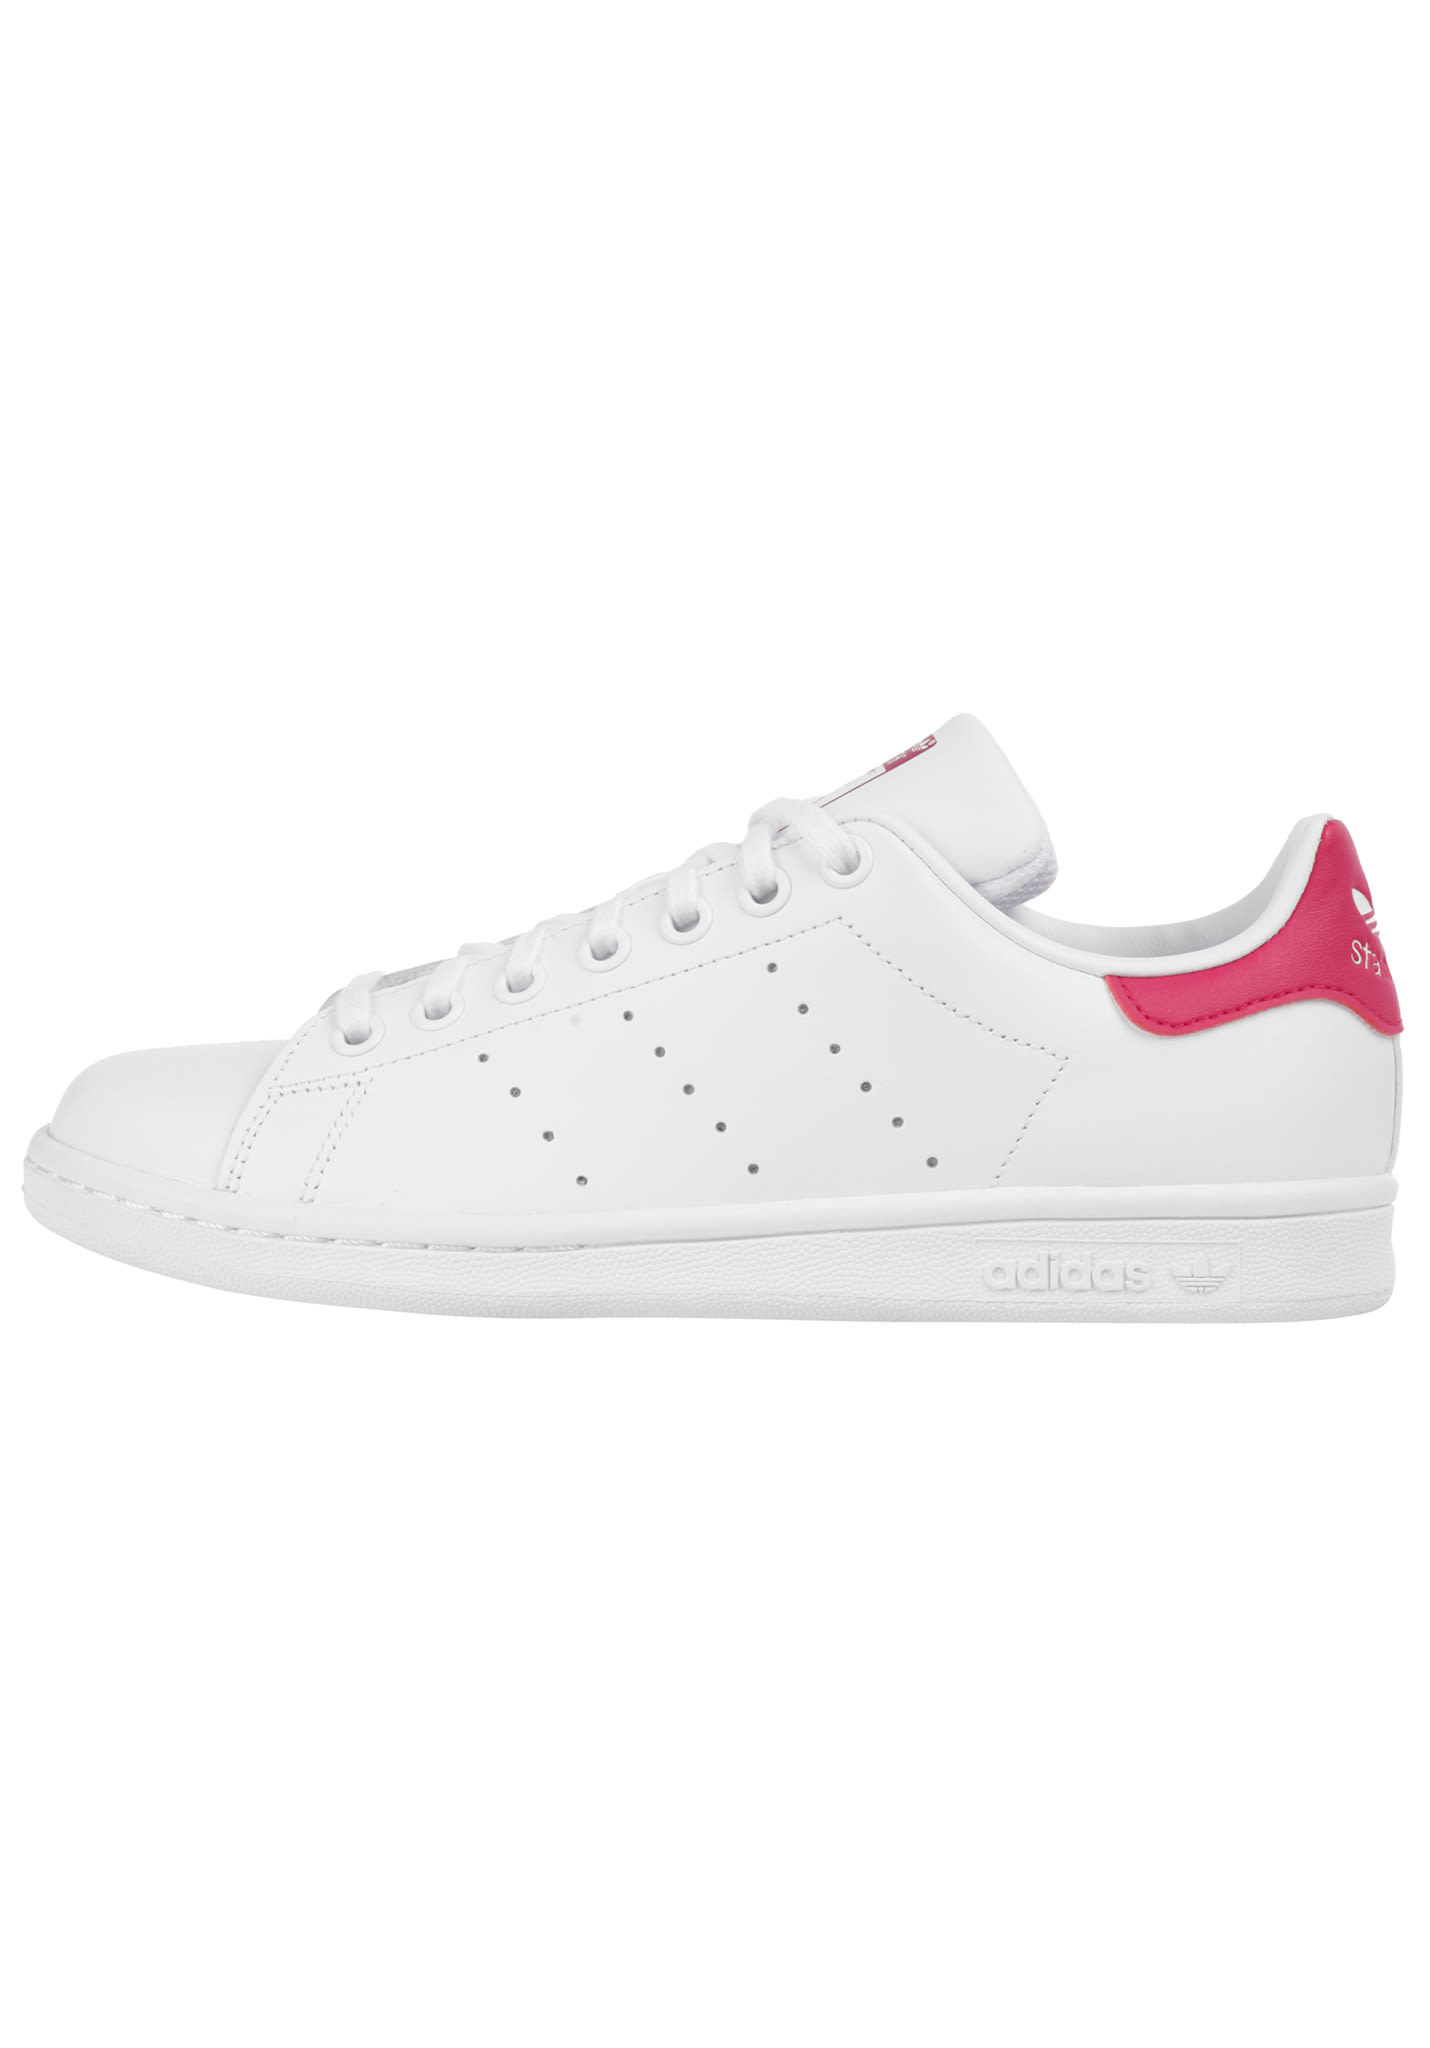 detailed pictures 49142 7d2d9 ADIDAS ORIGINALS Stan Smith - Sneakers - White